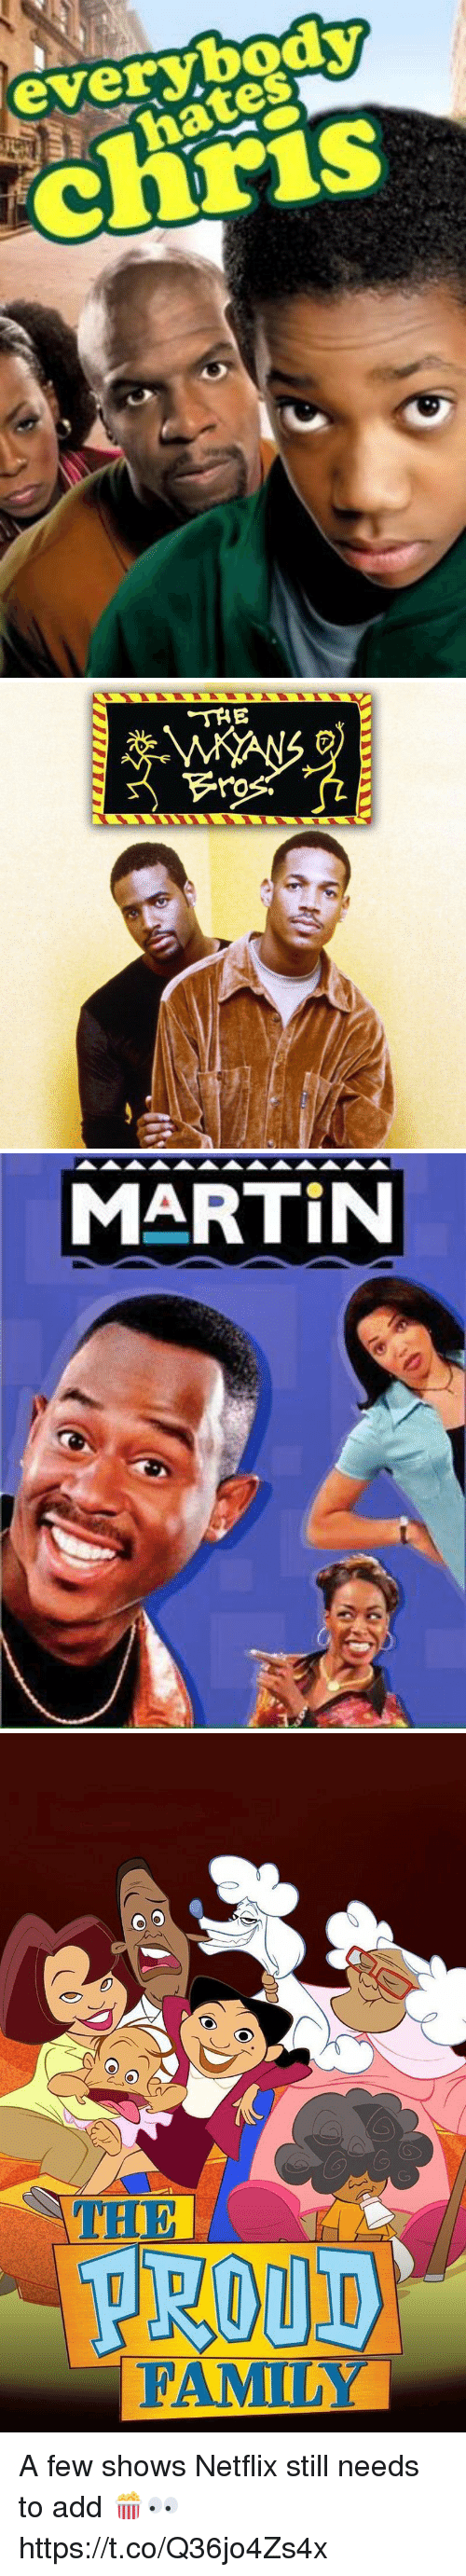 Family, Martin, and Memes: everybody  ates   THE  ro   MARTIN   O O  PROUD  FAMILY A few shows Netflix still needs to add 🍿👀 https://t.co/Q36jo4Zs4x